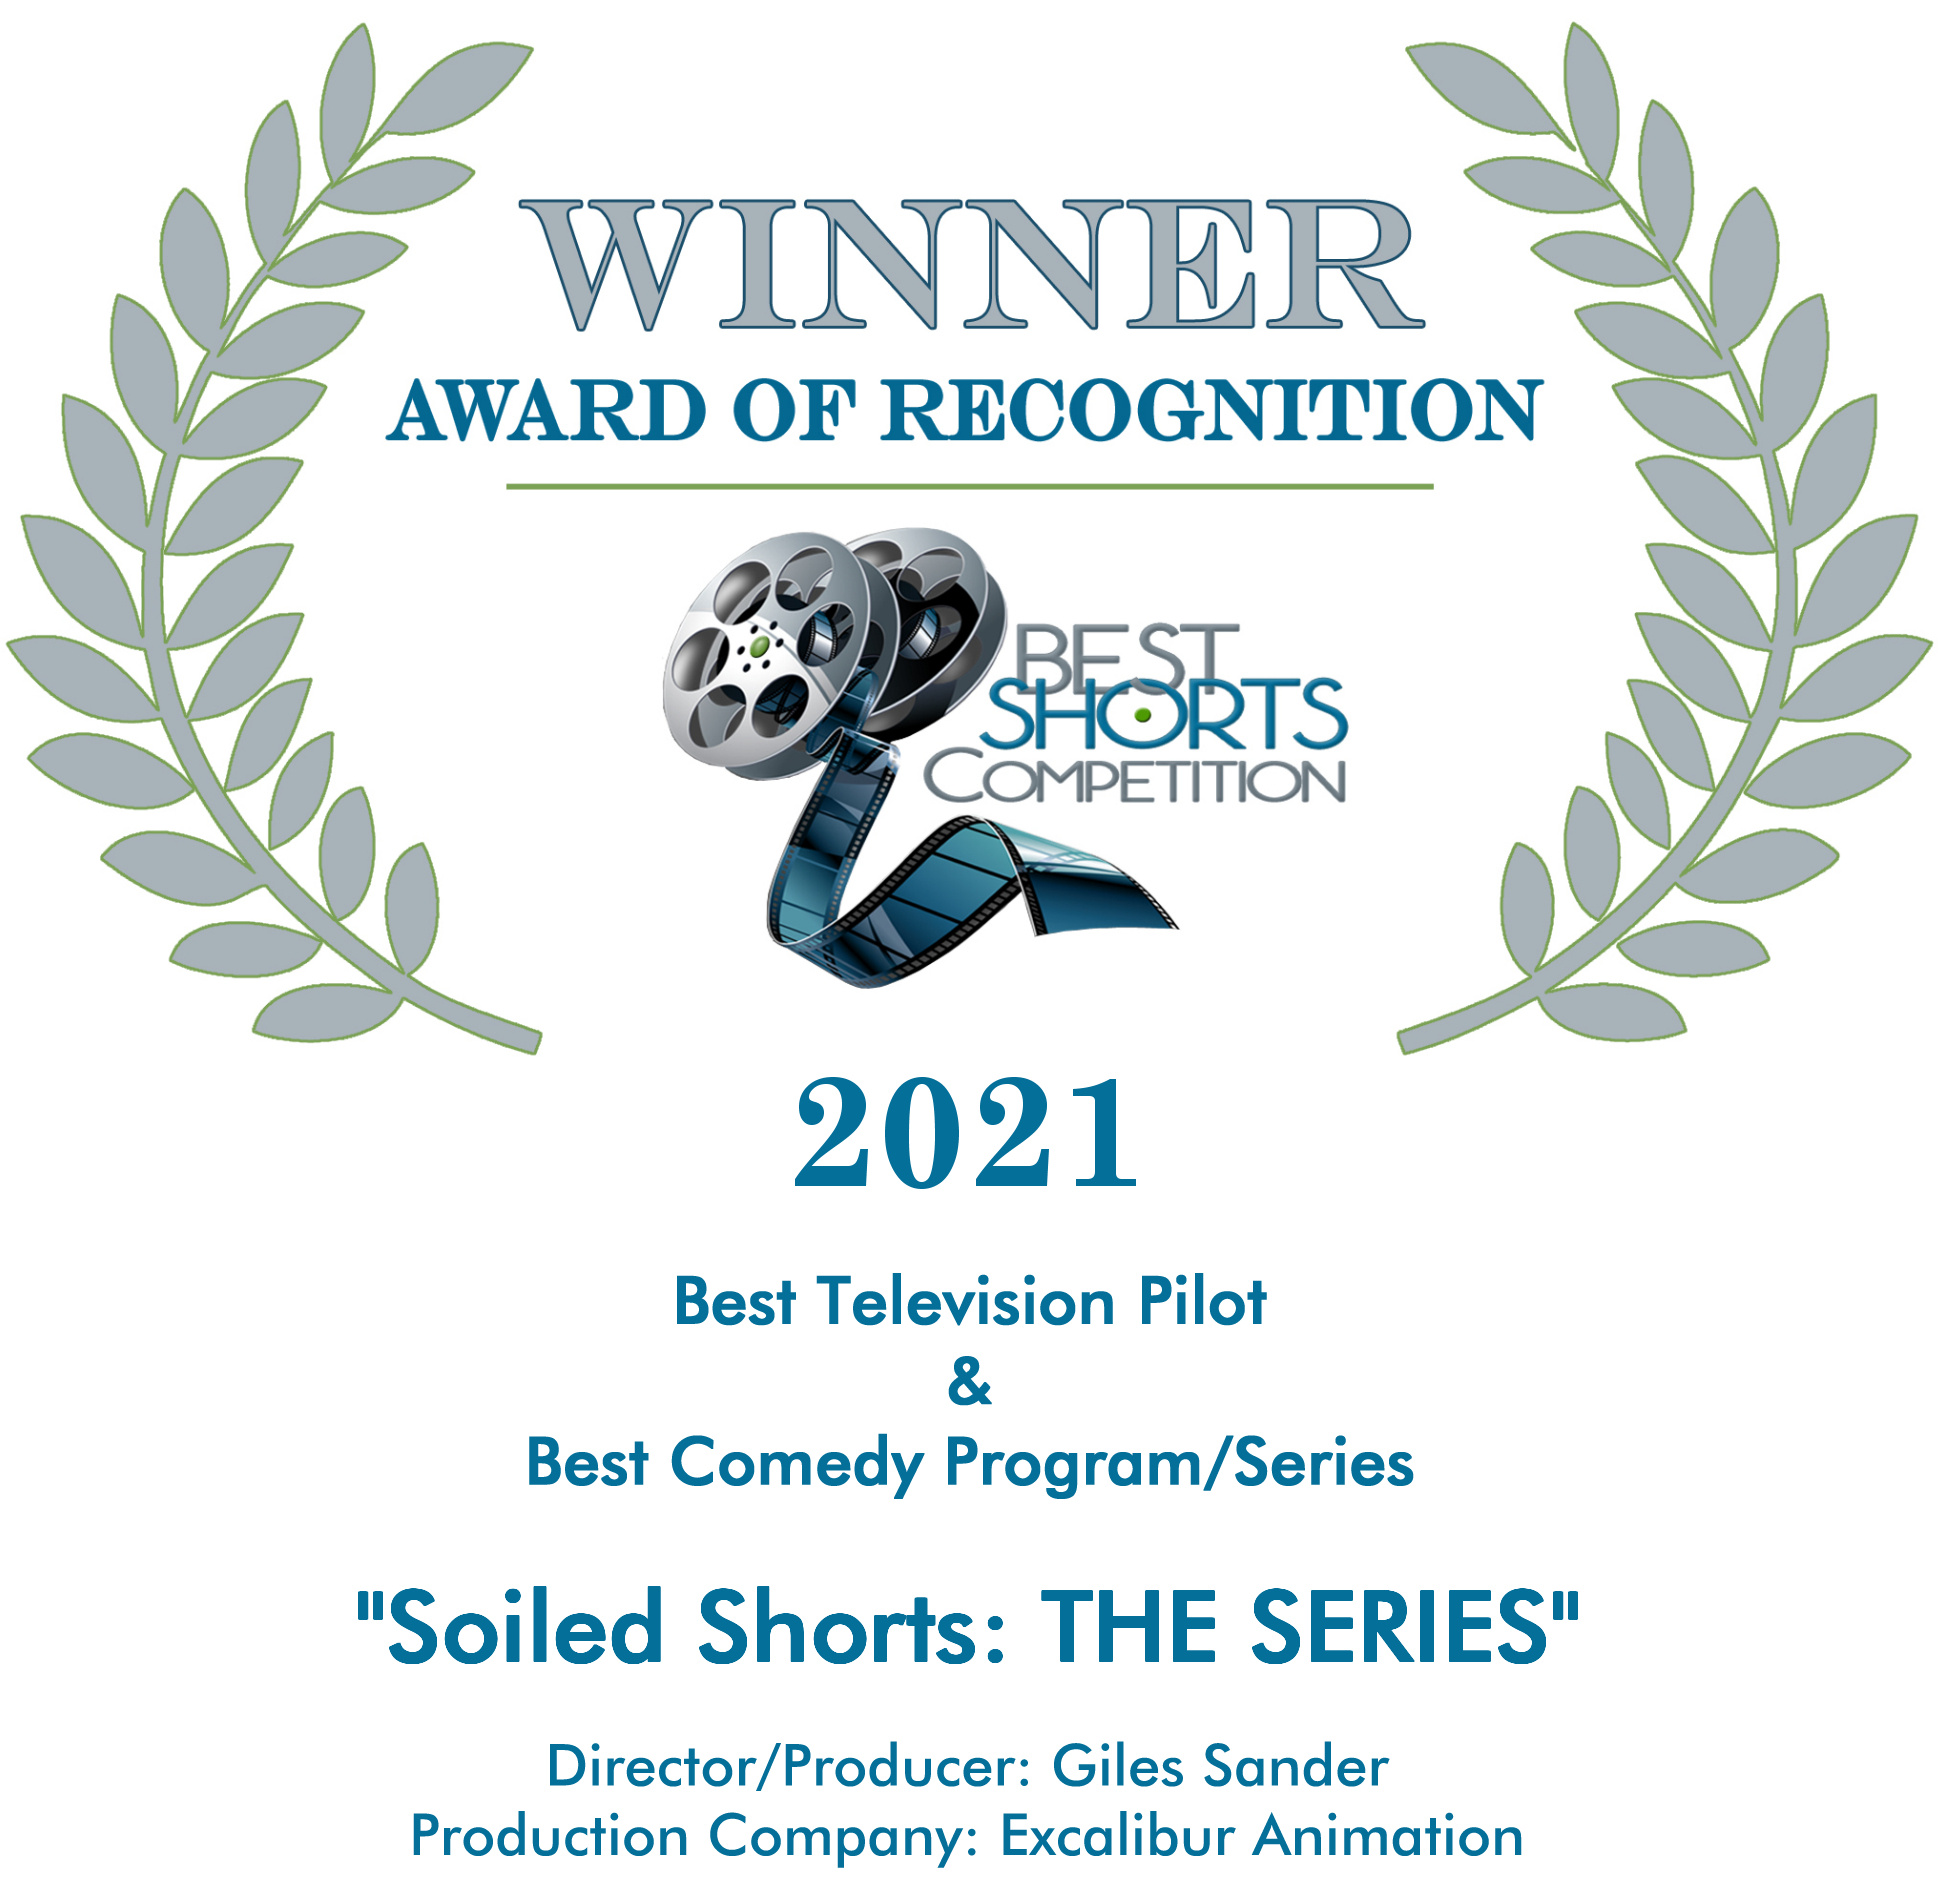 Winner - Award of Recognition Best Shorts Competition 2021